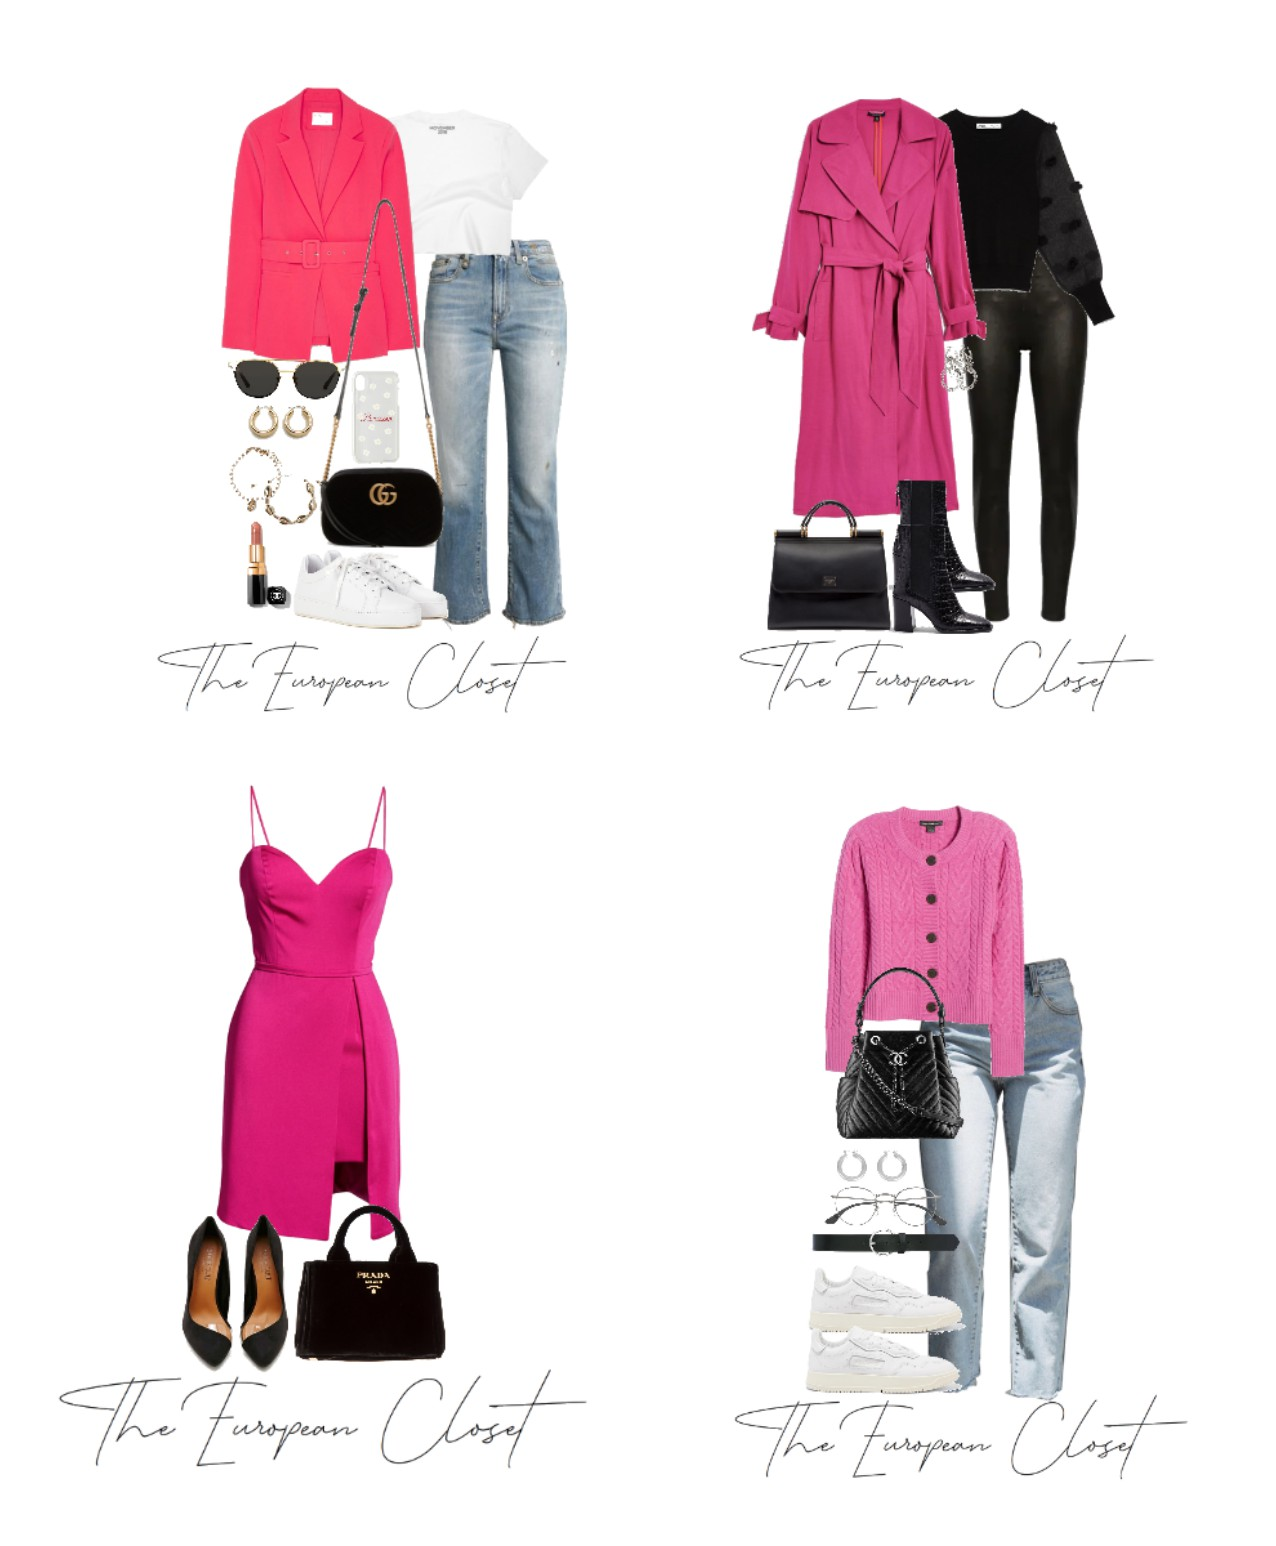 How To Style Hot Pink For A/W